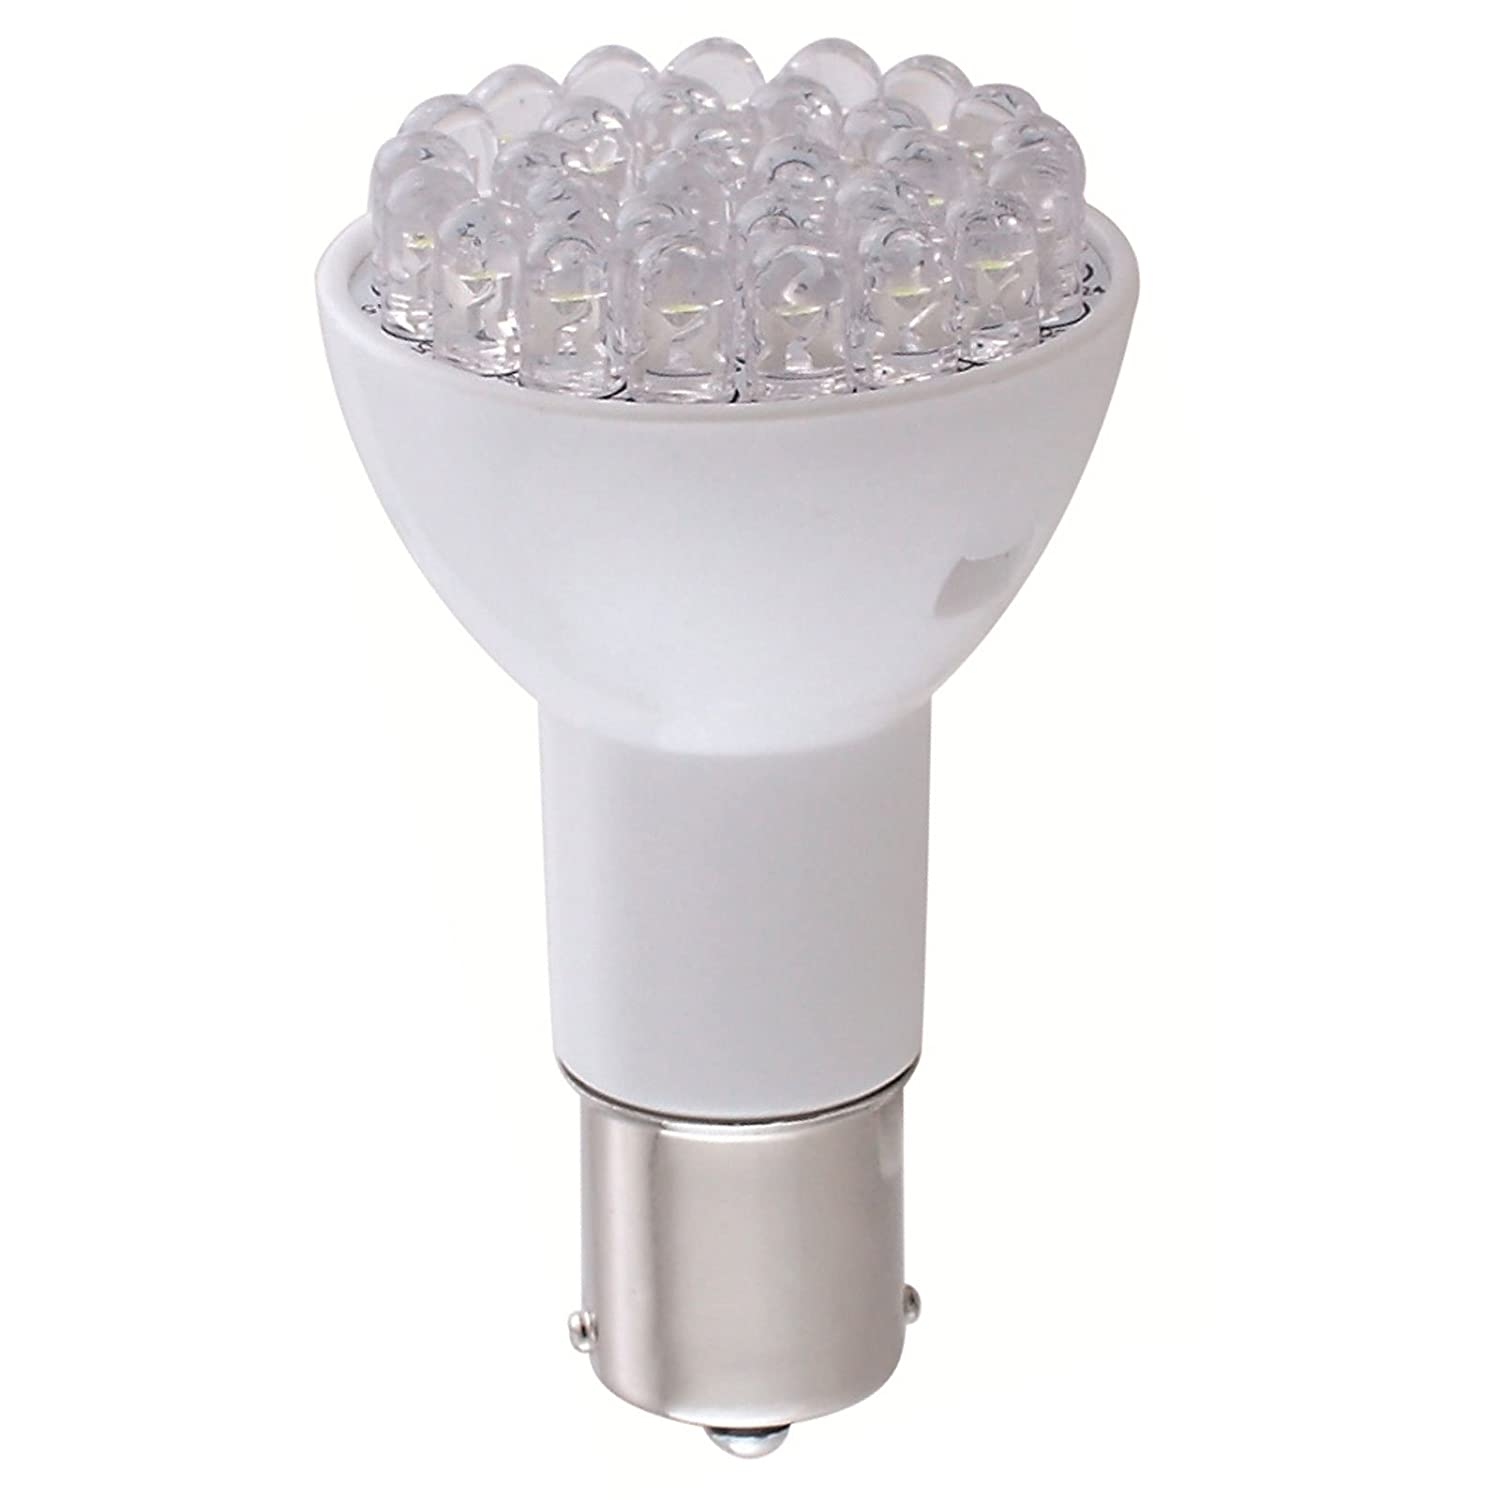 StarLights 921-280 Wedge Based Omnidirectional LED Replacement Bulb